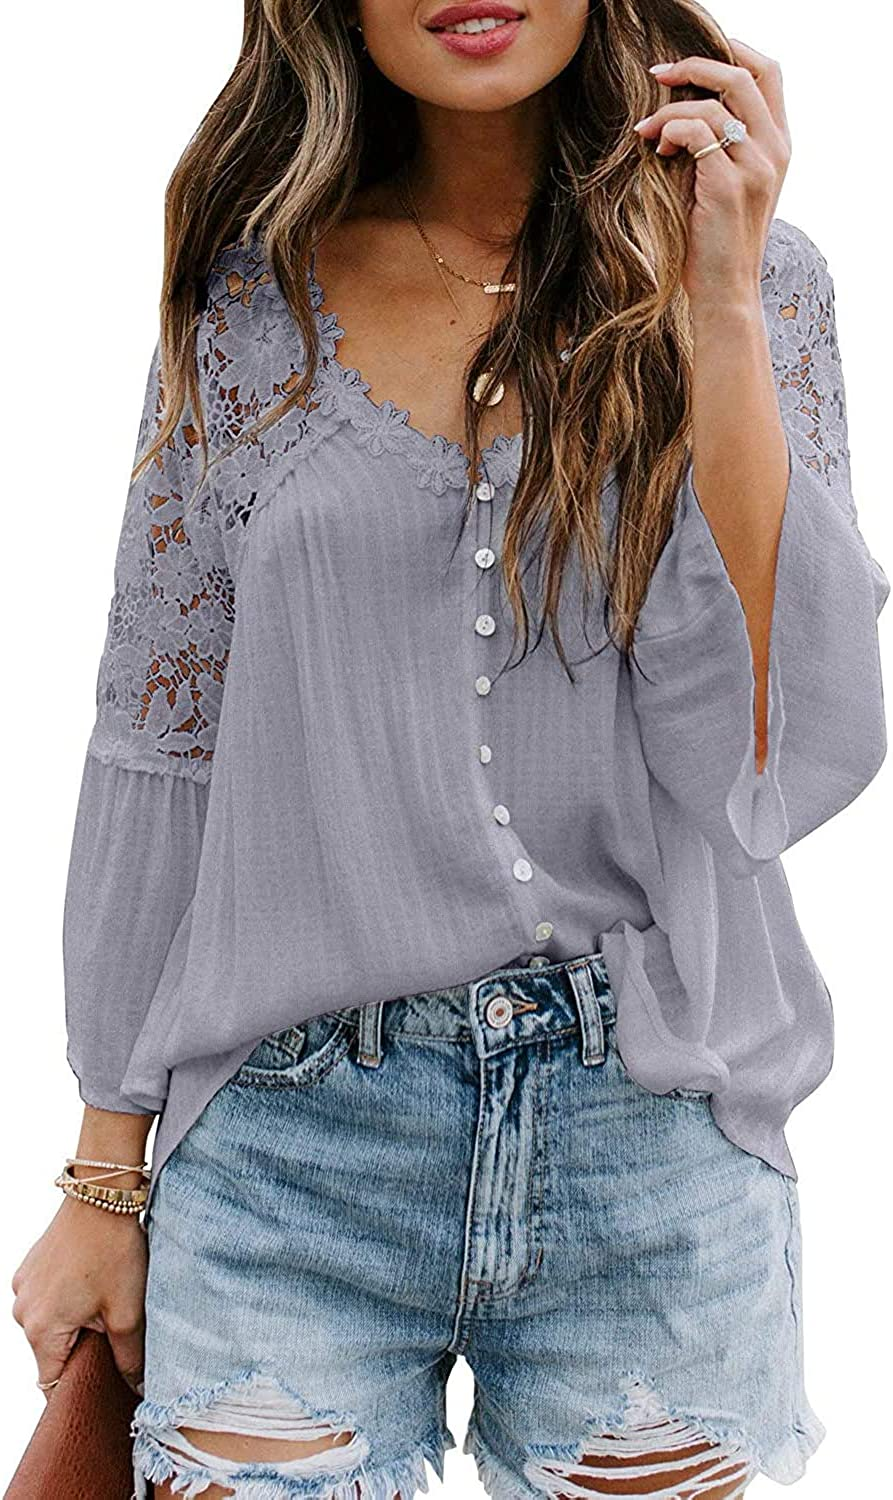 Uusollecy Women's Long Sleeve Top Lace Crochet Button Down Shirts Casual Loose Tops and Blouses